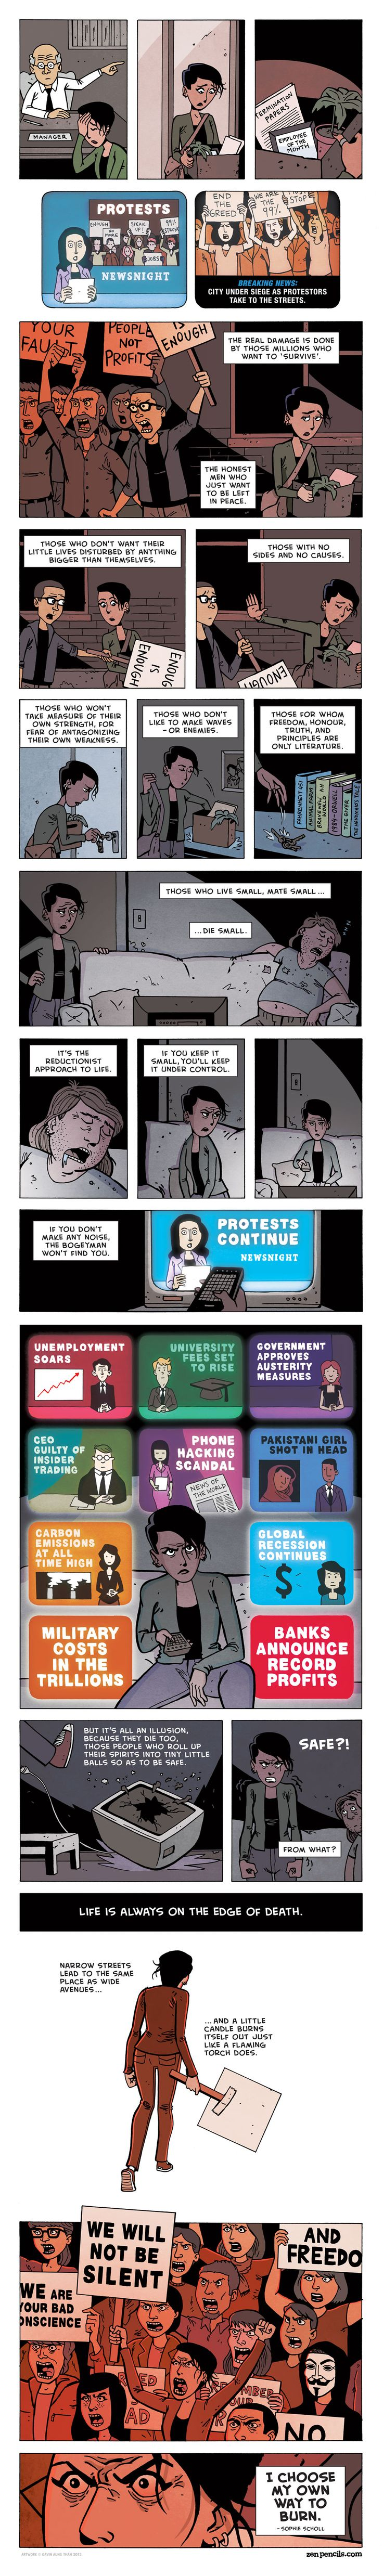 Comic Uses Sophie Scholl to Depict Social Frustrations